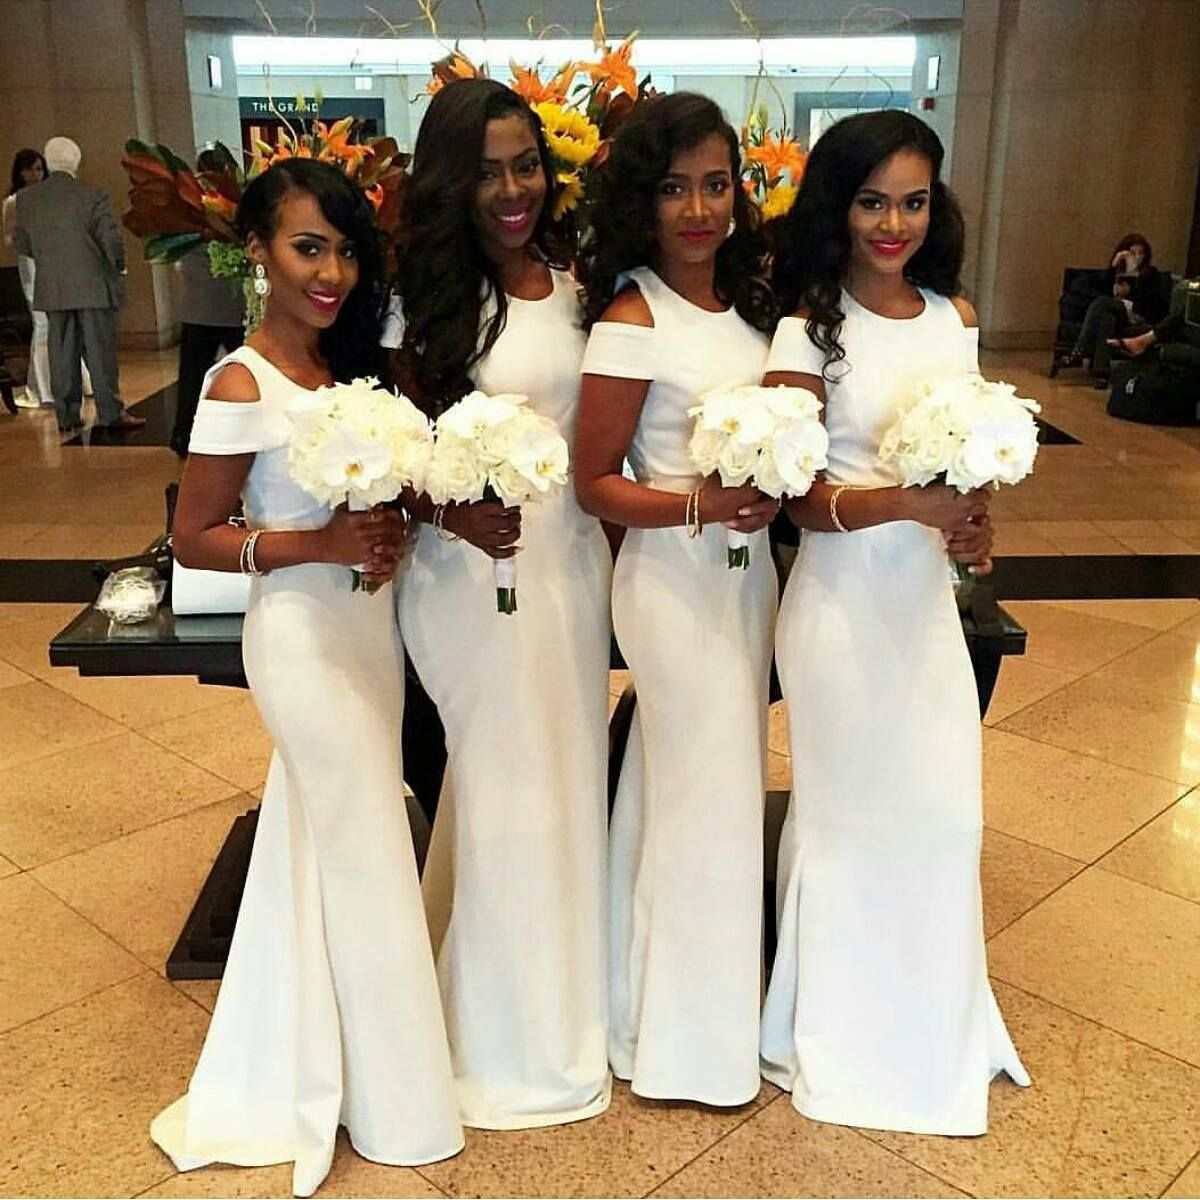 Charming prom dresswhite prom dresssheath prom dressfashion cheap maid of honor gown buy quality maid of honor directly from china mermaid bridesmaid dresses suppliers afarican 2017 new white stain mermaid ombrellifo Image collections